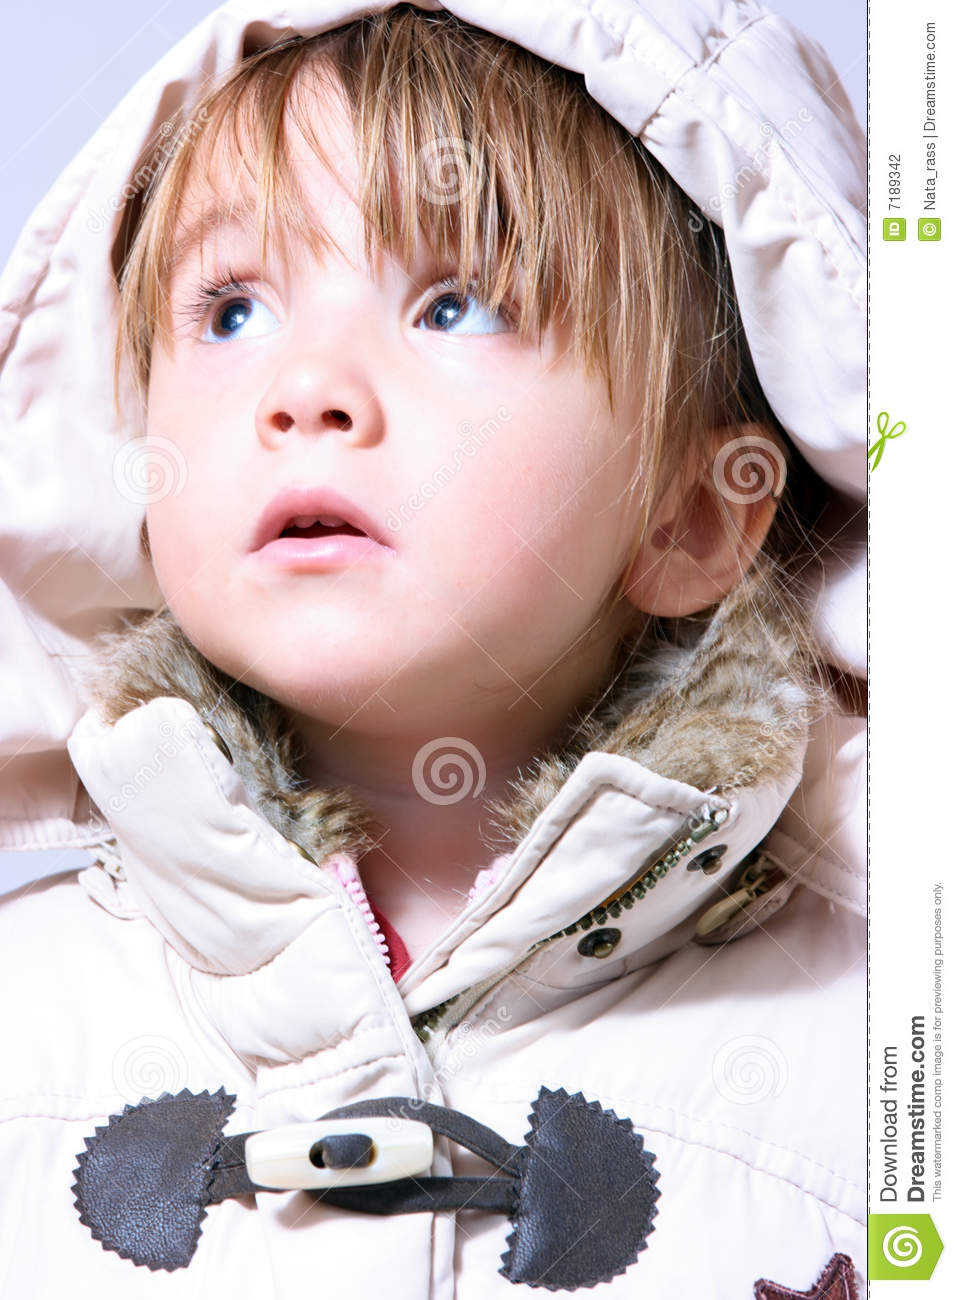 ce8e1a057c5 Lovely Winter-dressed Baby Girl Stock Photo - Image of dress ...